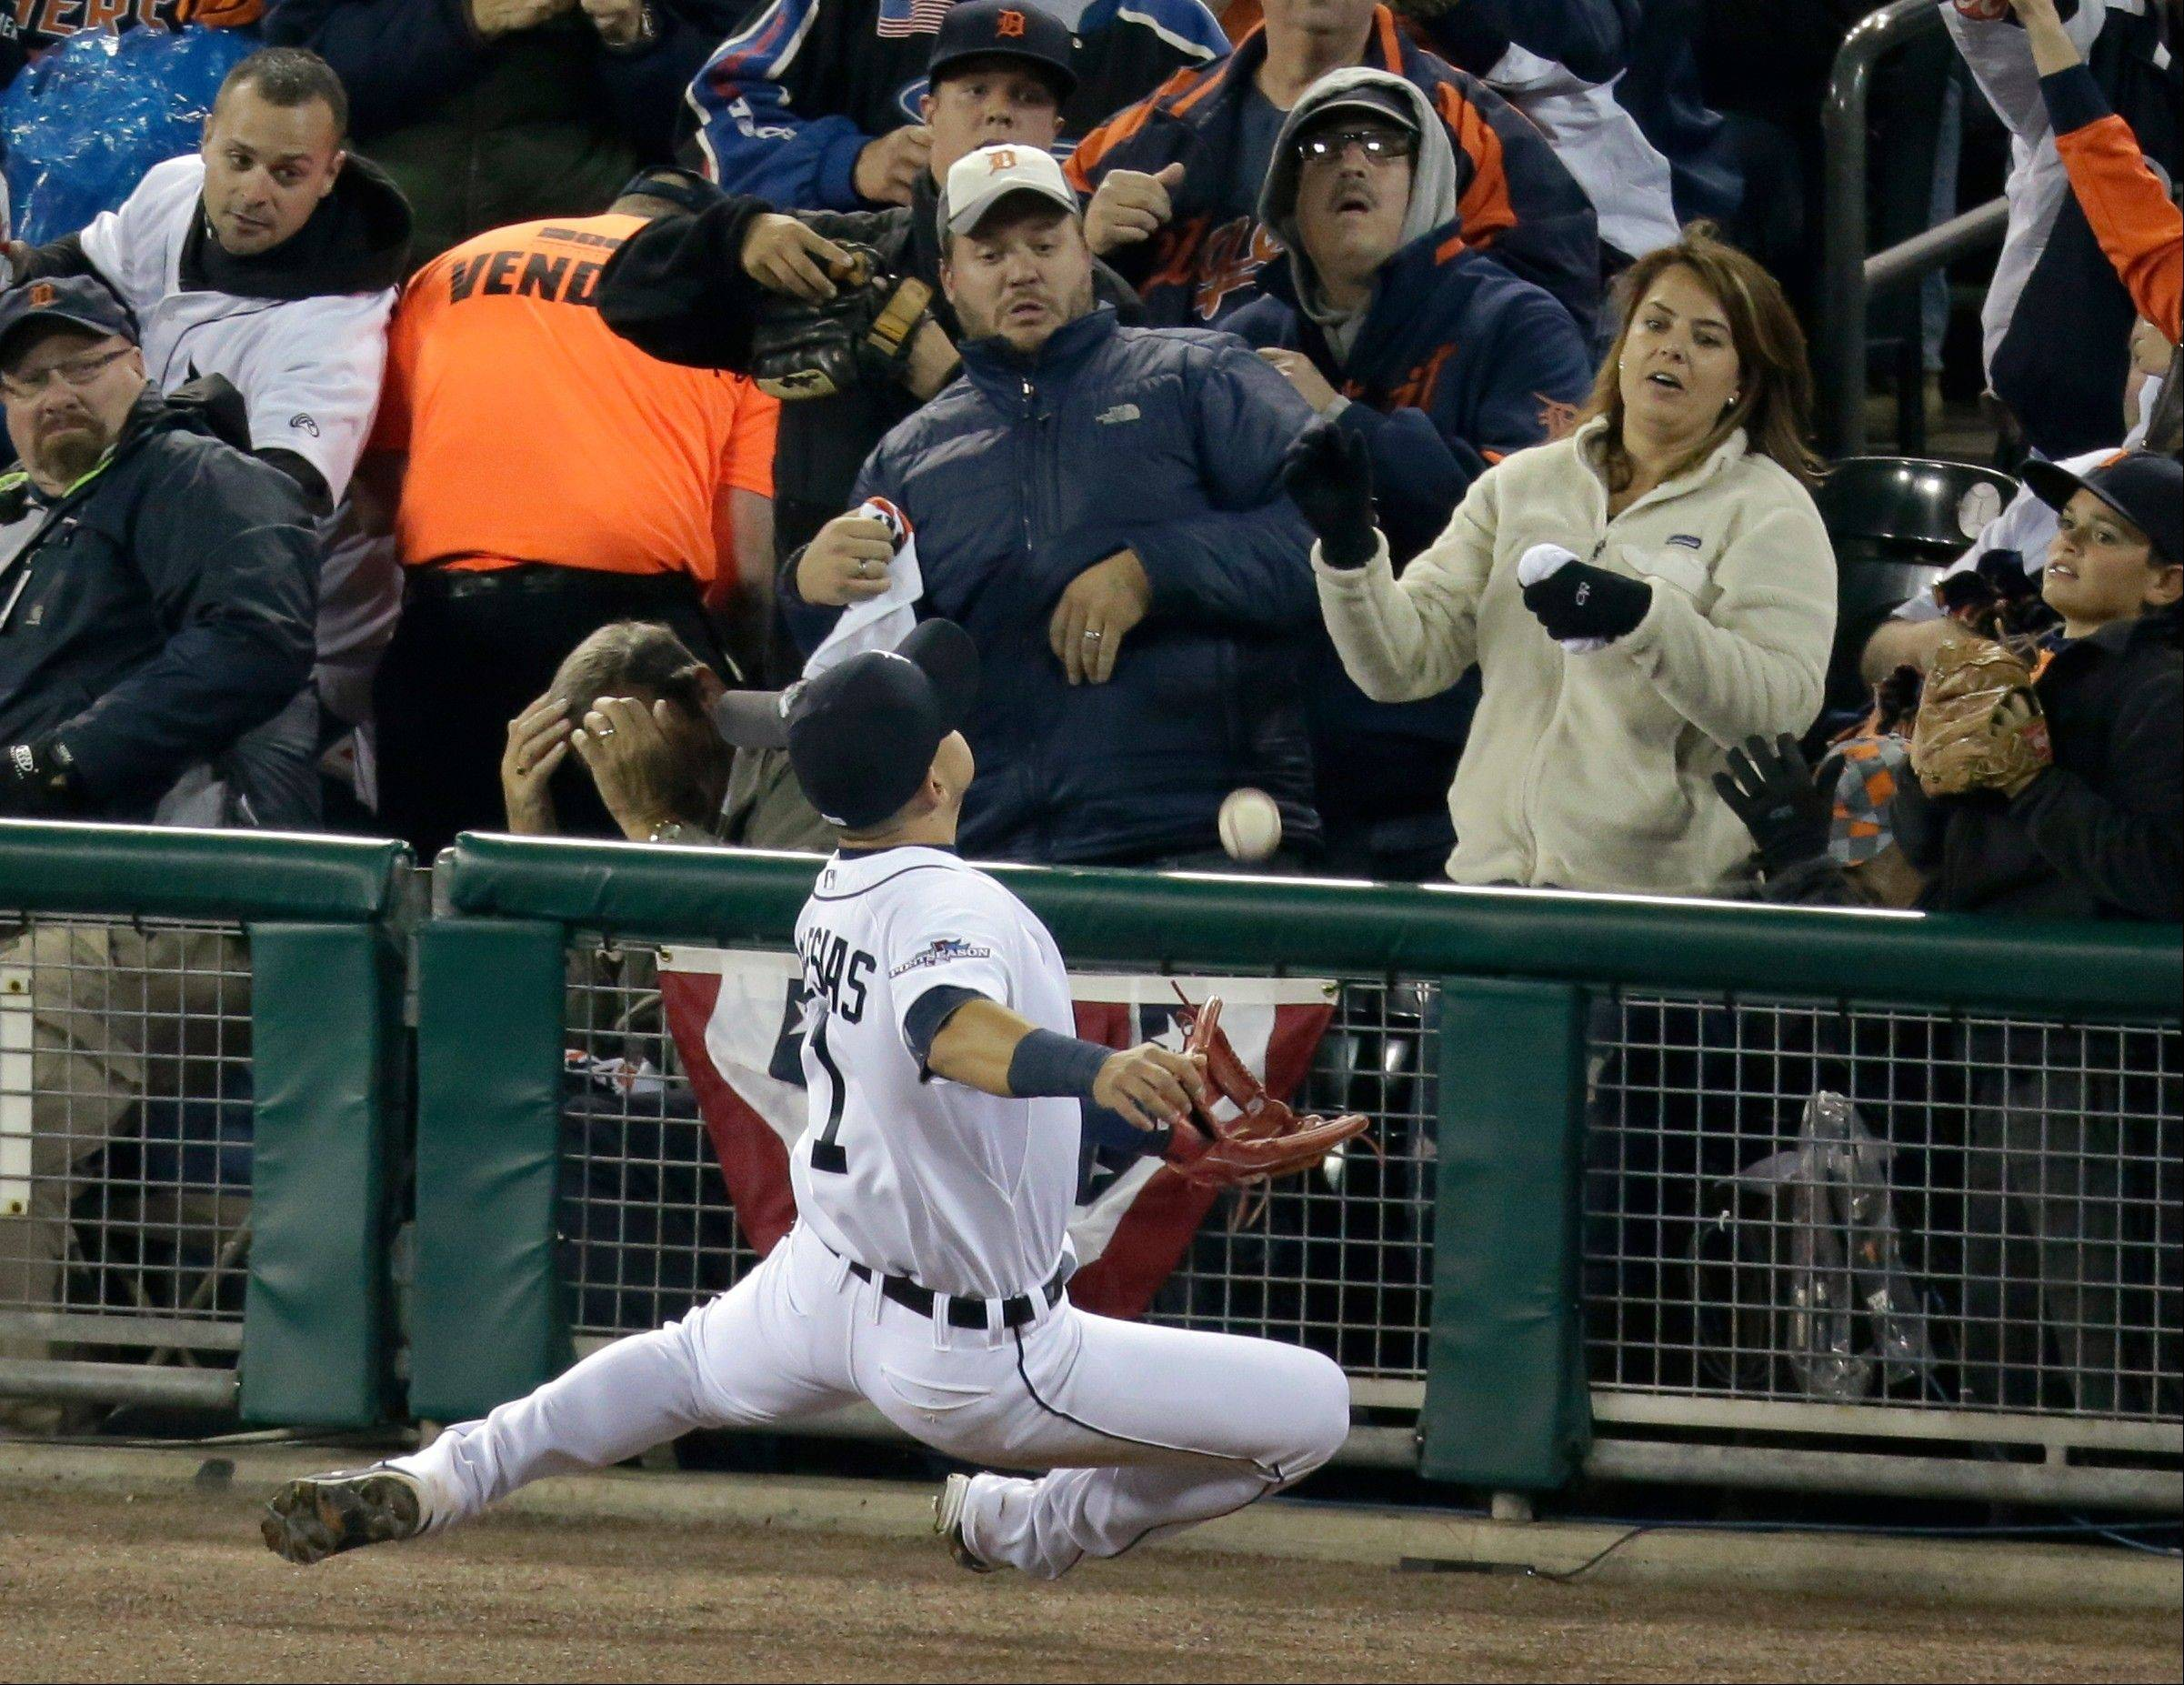 Tigers shortstop Jose Iglesias tries to make a play on a ball hit by Boston 's Mike Carp in the sixth inning.